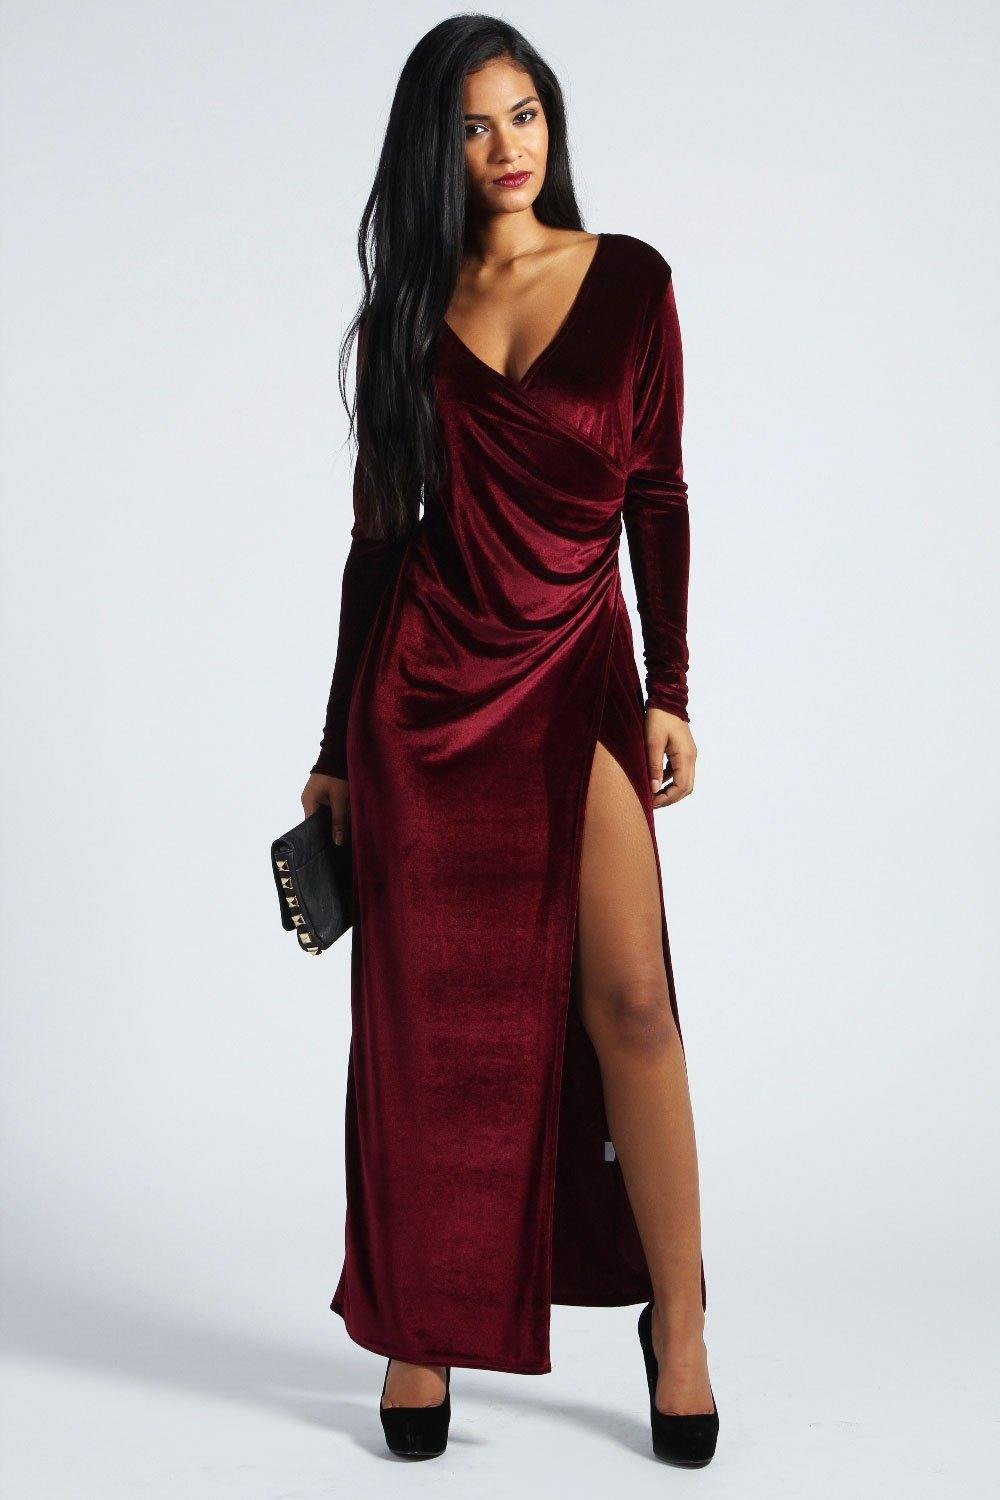 2019 year lifestyle- Maxi Velvet dress pictures